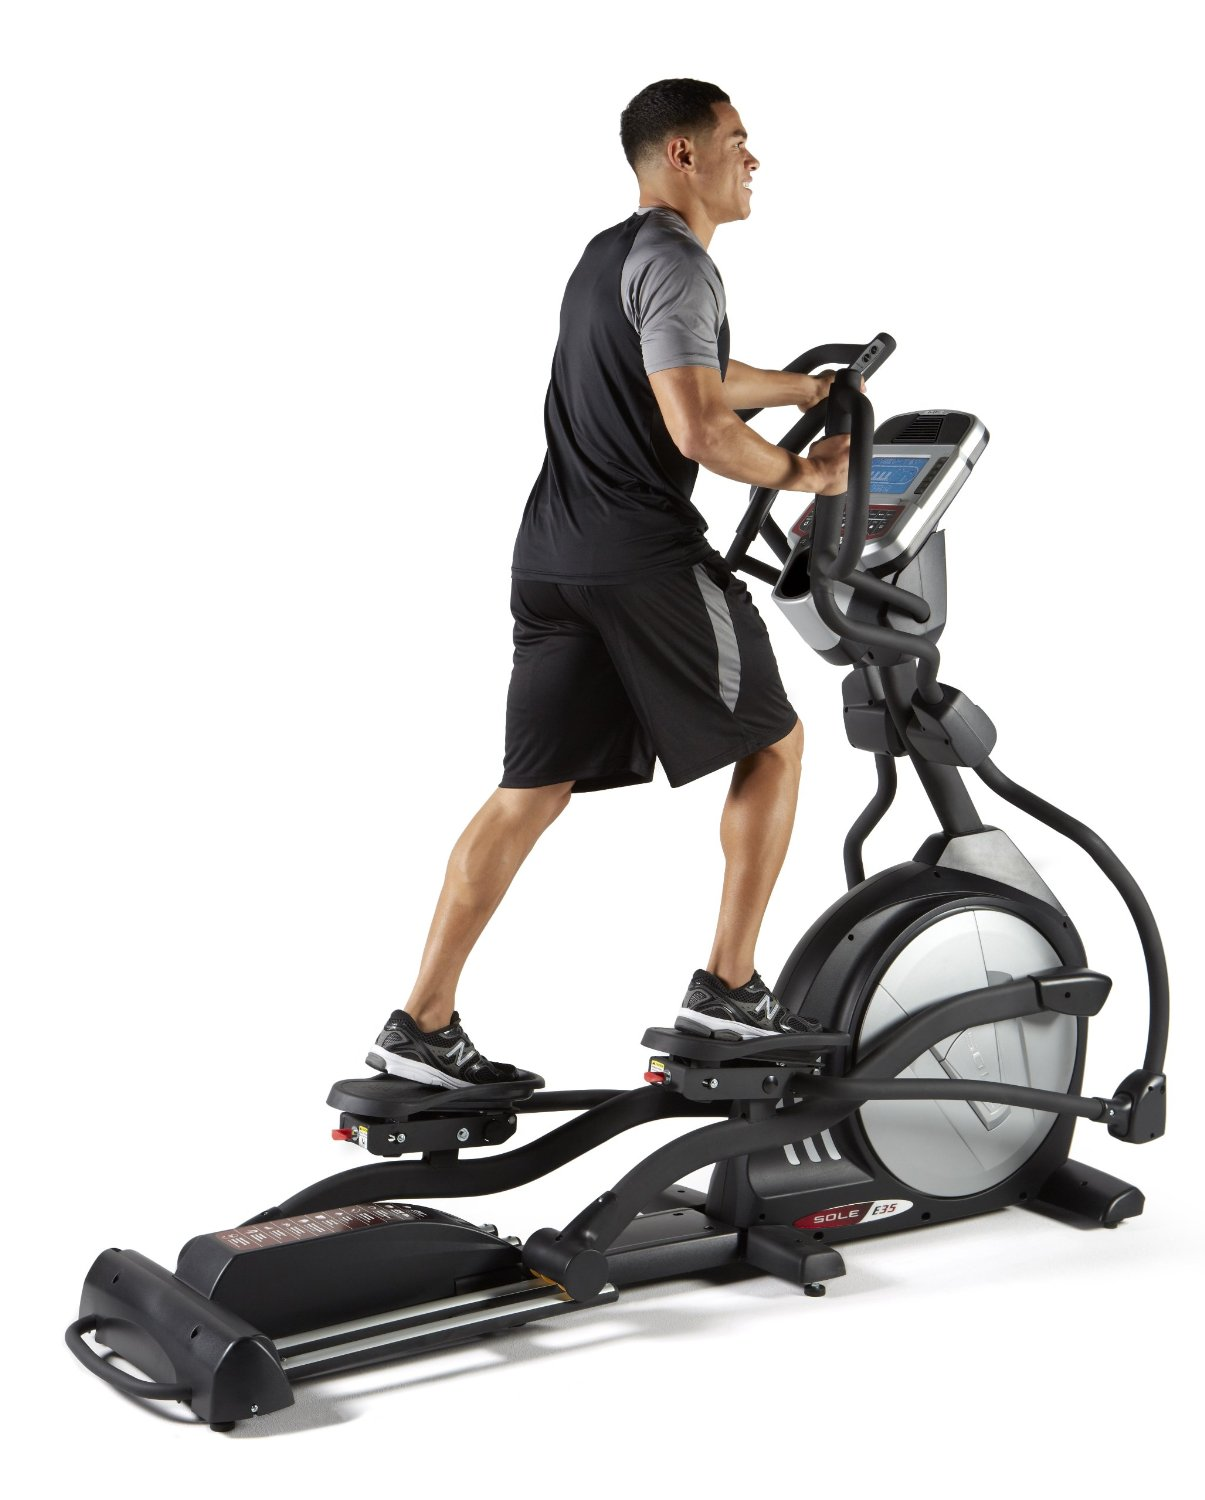 Best Elliptical Machine 2020 reviews-Must READ This before buying!